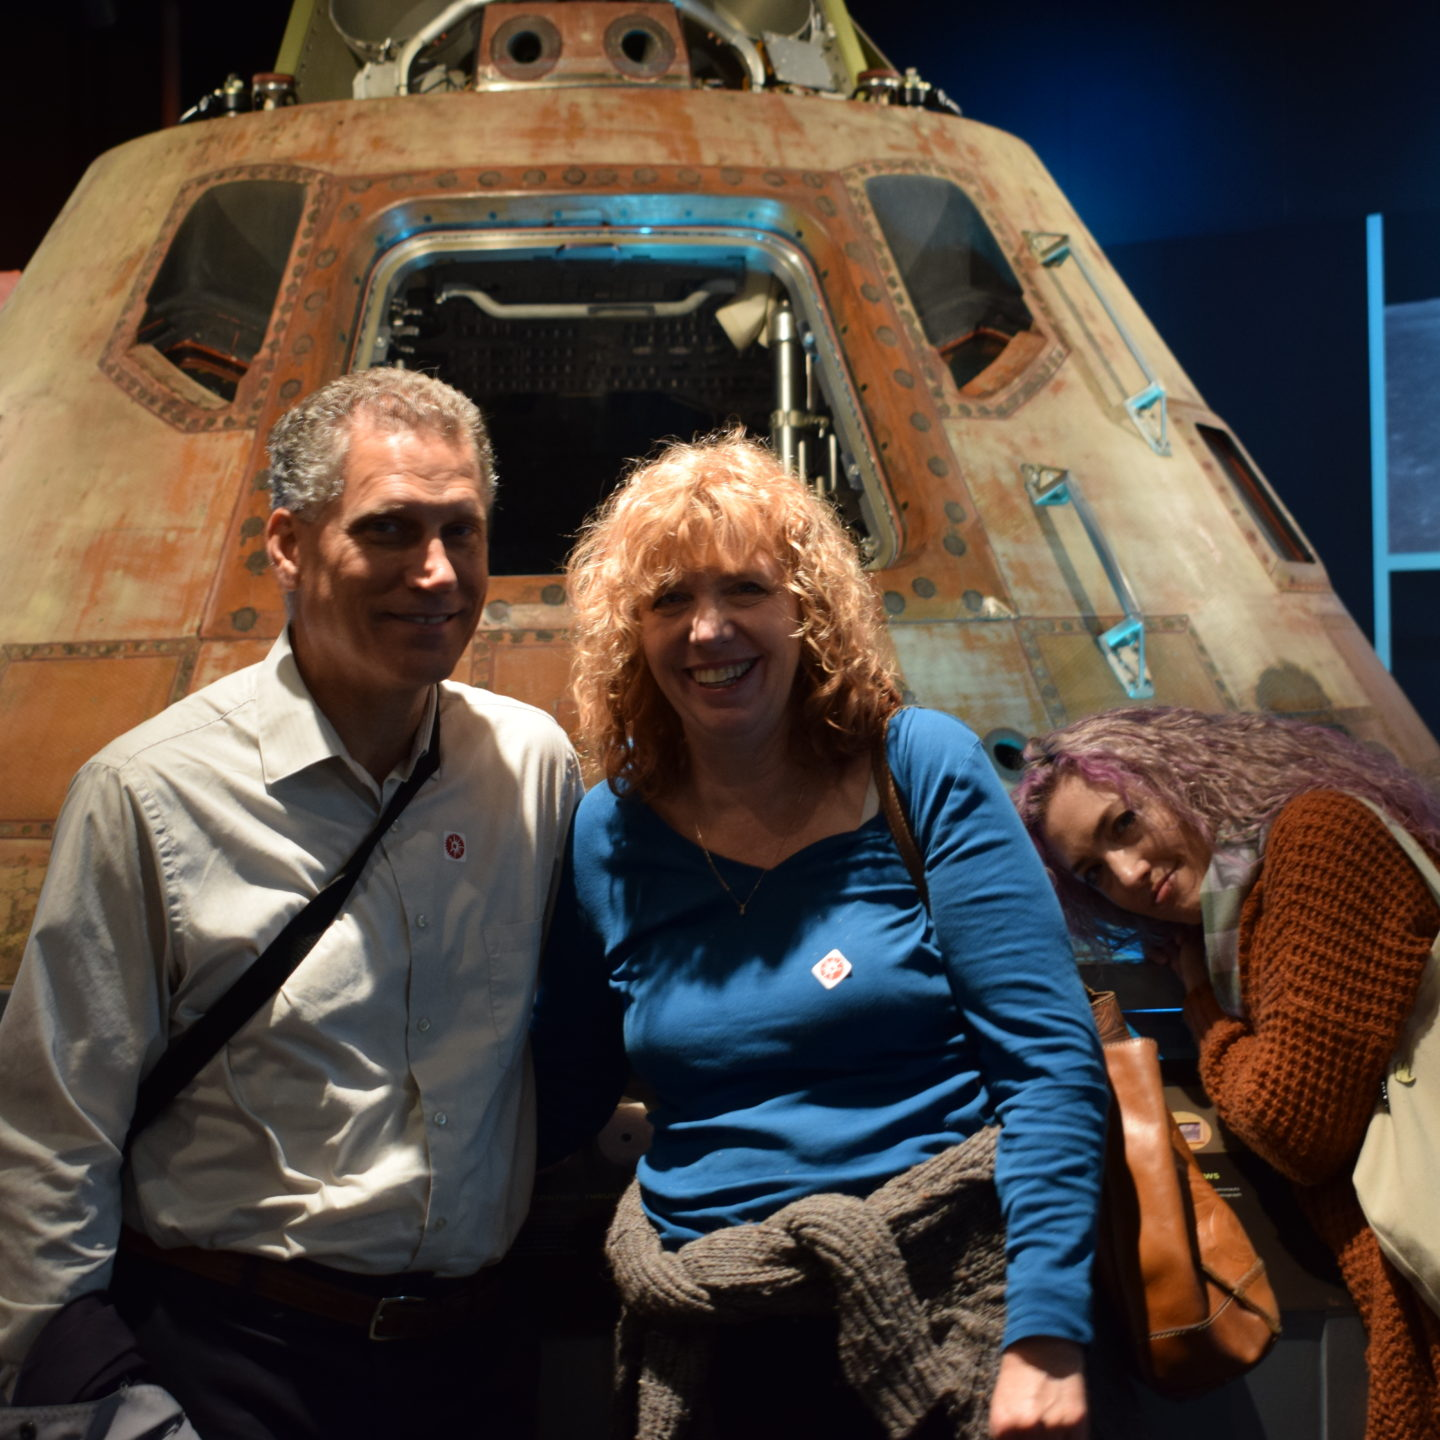 Apollo 11 Lunar Capsule at Pittsburgh's John Heinz History Center